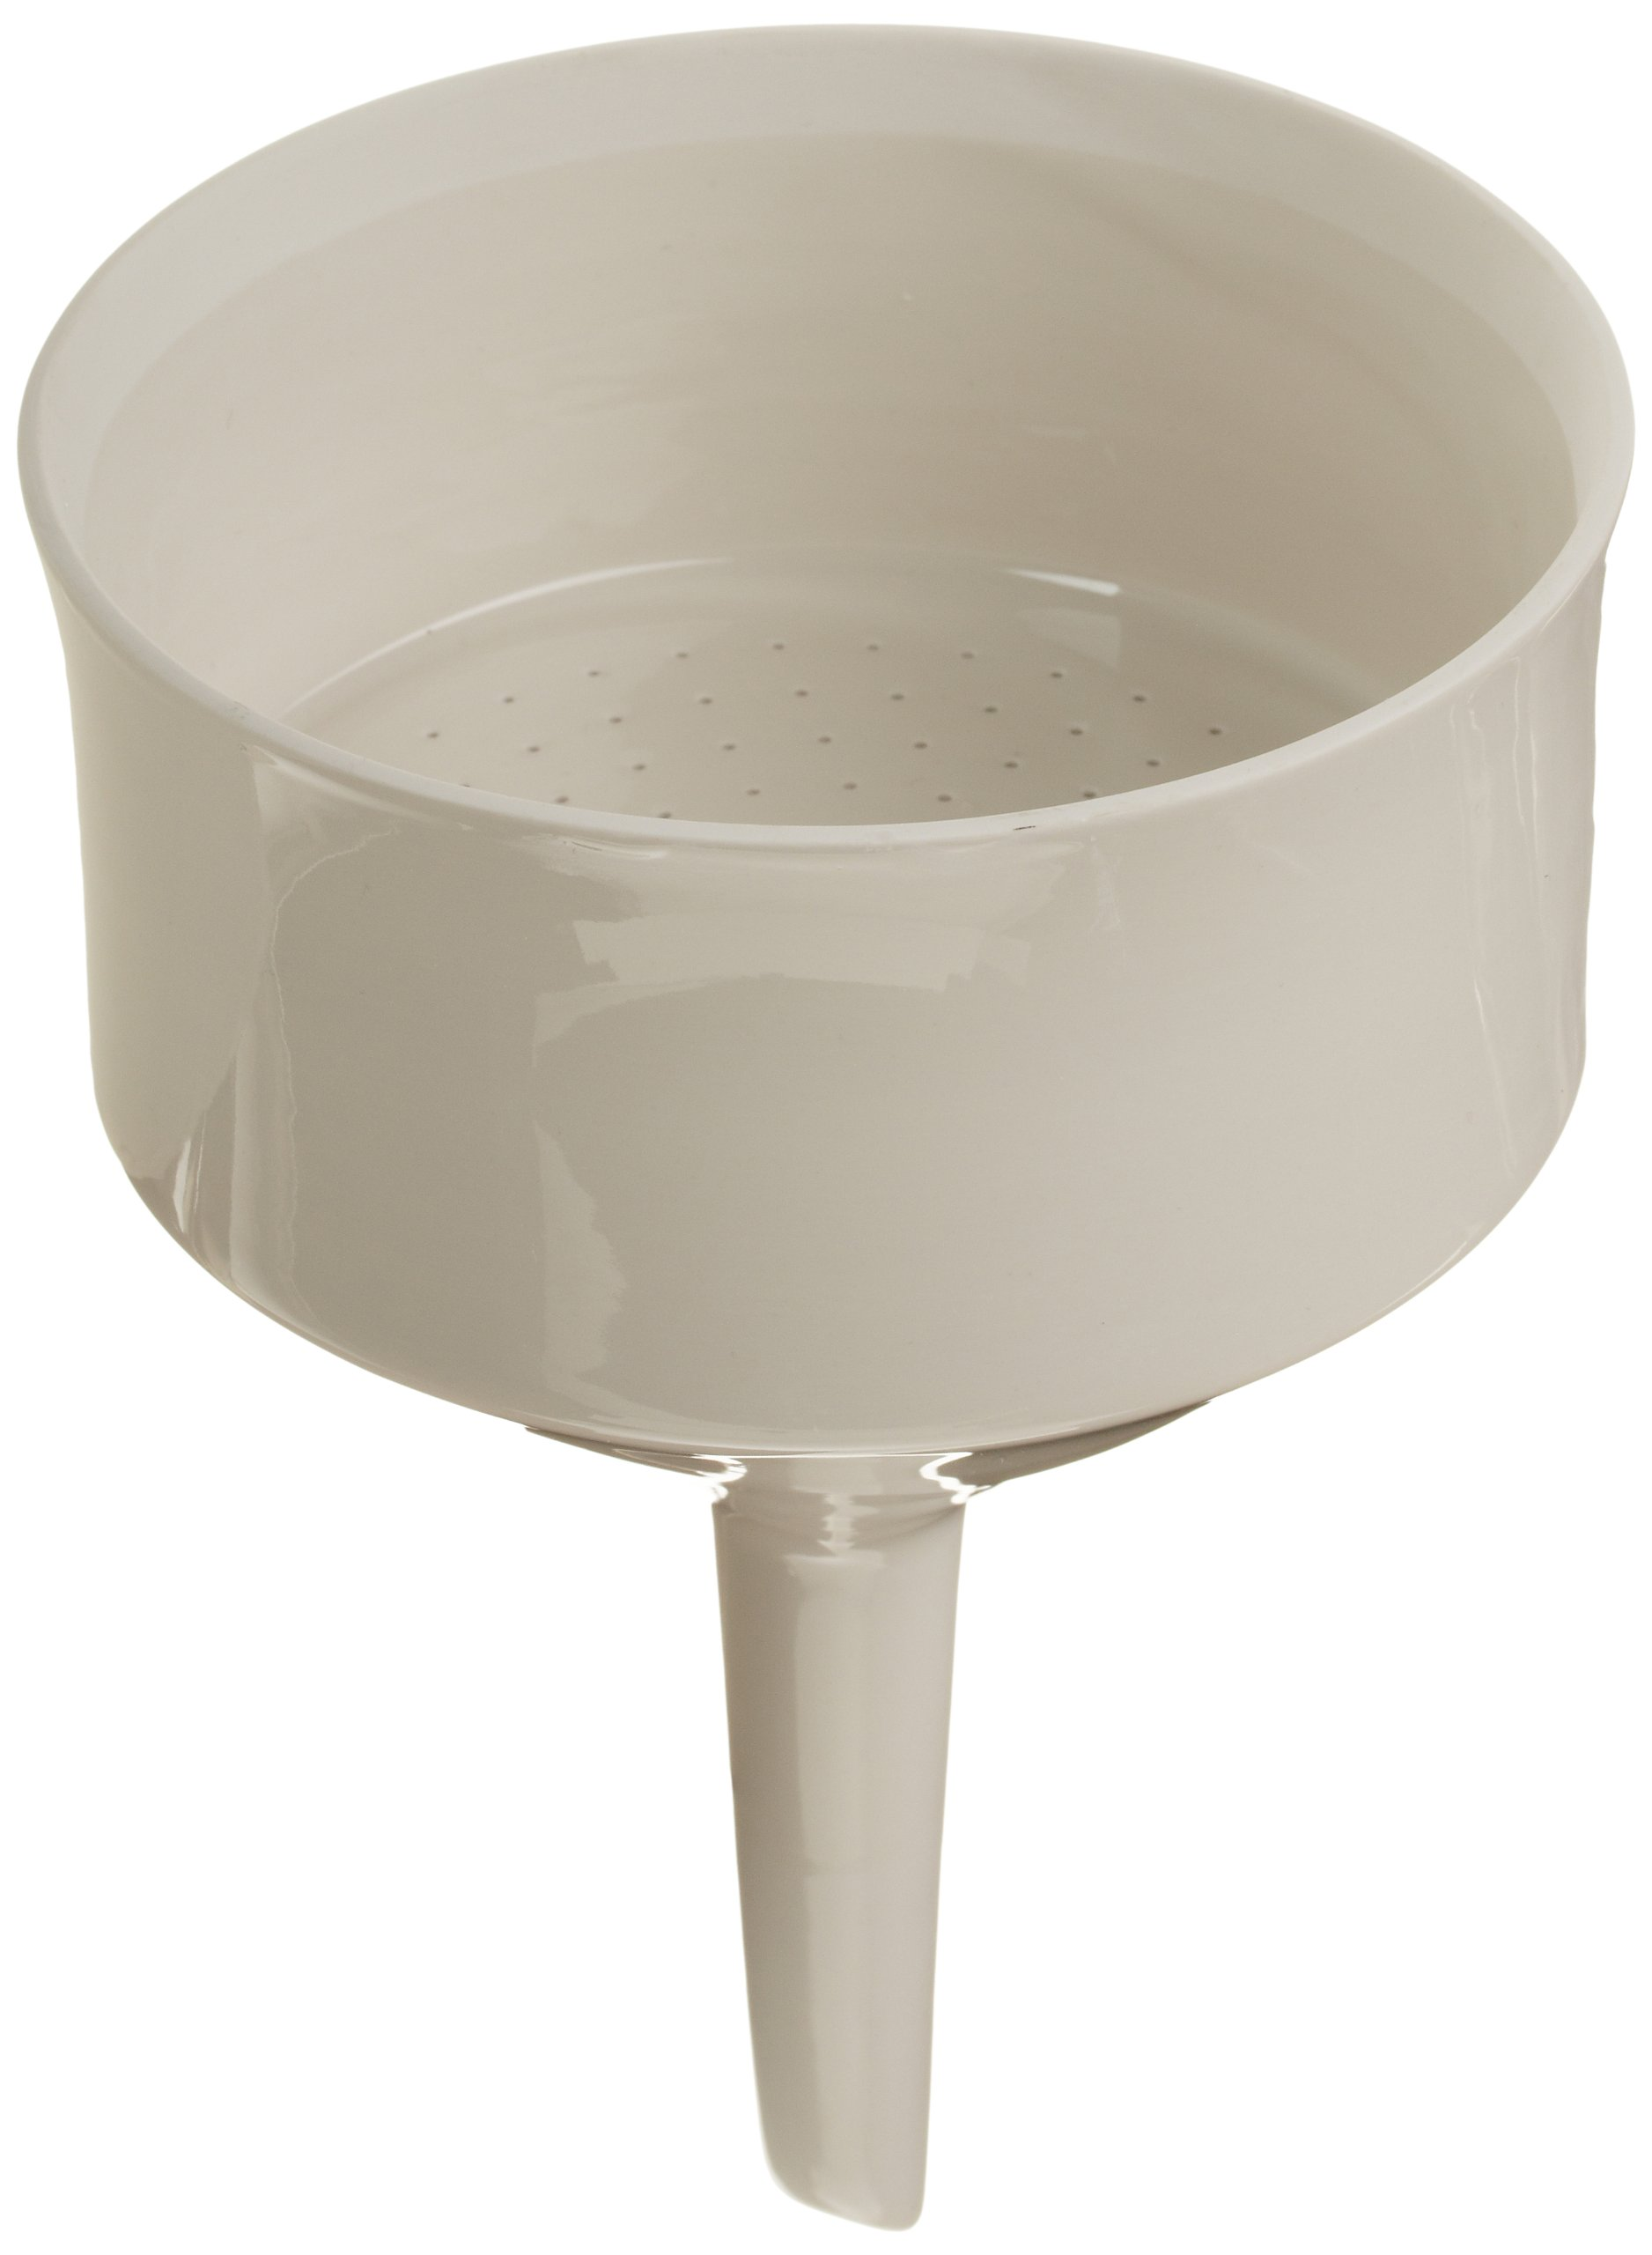 CoorsTek 60244 Porcelain Ceramic Buchner Funnel with Fixed Perforated Plate, 550mL Capacity, 195mm Height, 110mm Filter Paper Diameter